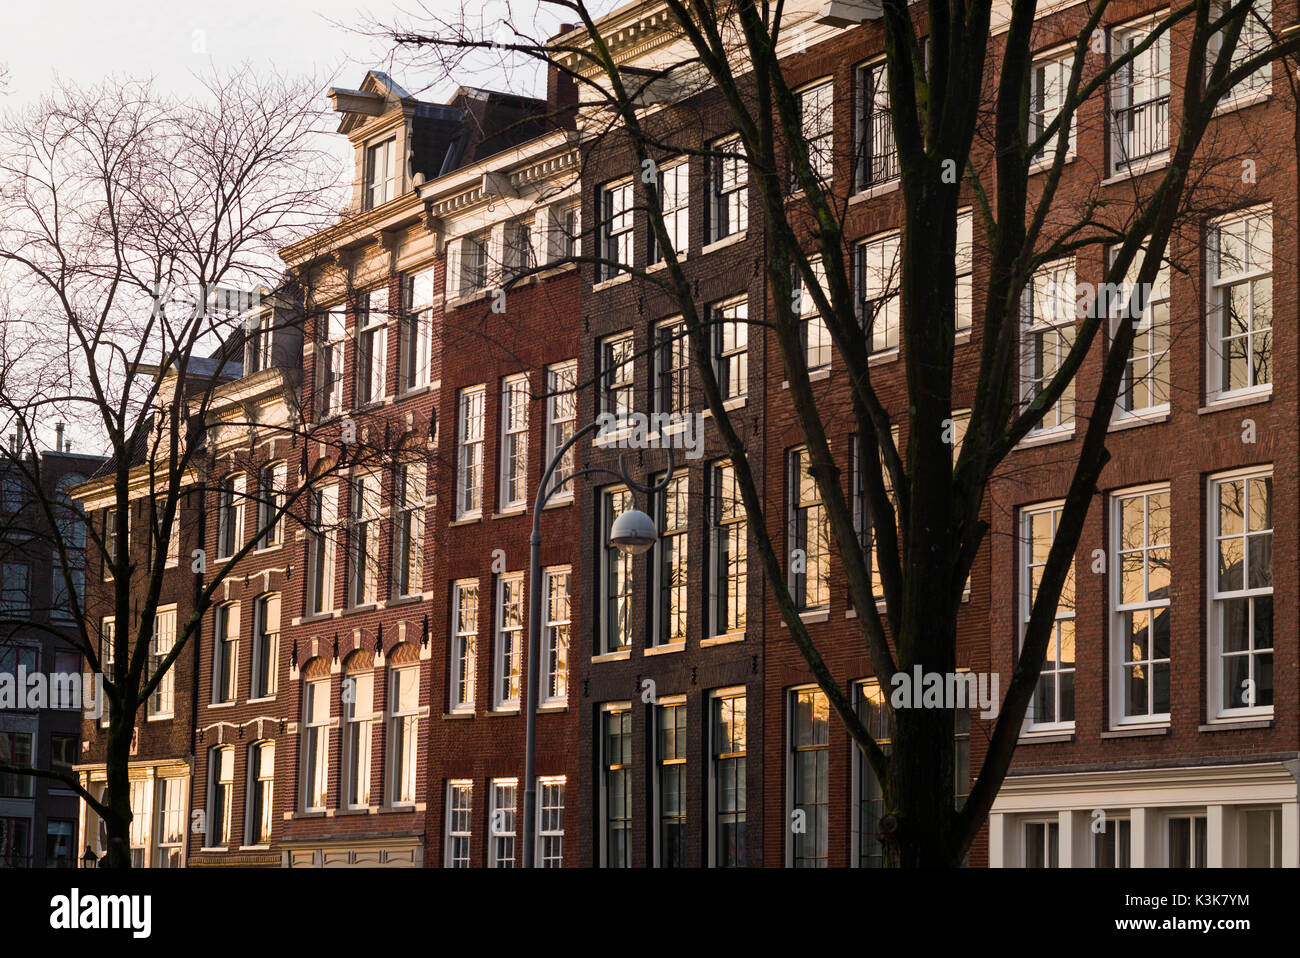 Netherlands, Amsterdam, Prinsengracht canal buildings, dawn - Stock Image